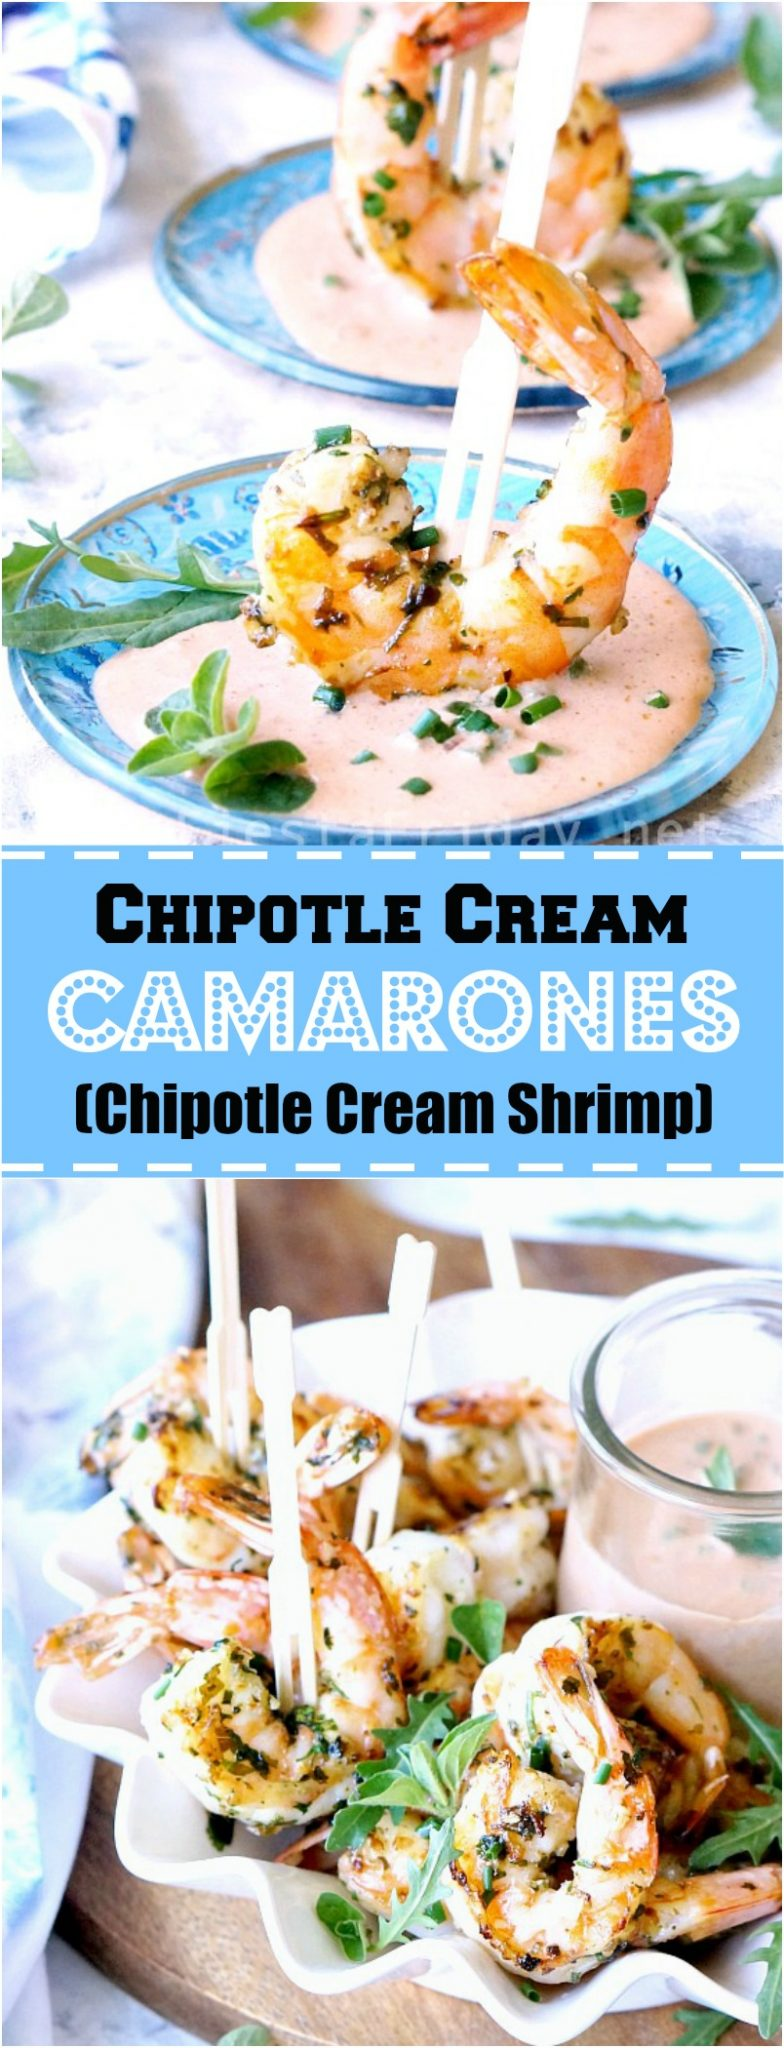 Camarones Chipotle Cream, which translates to Chipotle Cream Shrimp, is an easy yet elegant appetizer for a Cinco de Mayo celebration or any fiesta! #appetizer #camarones #shrimp #Cincodemayo #chipotle | FiestaFriday.net